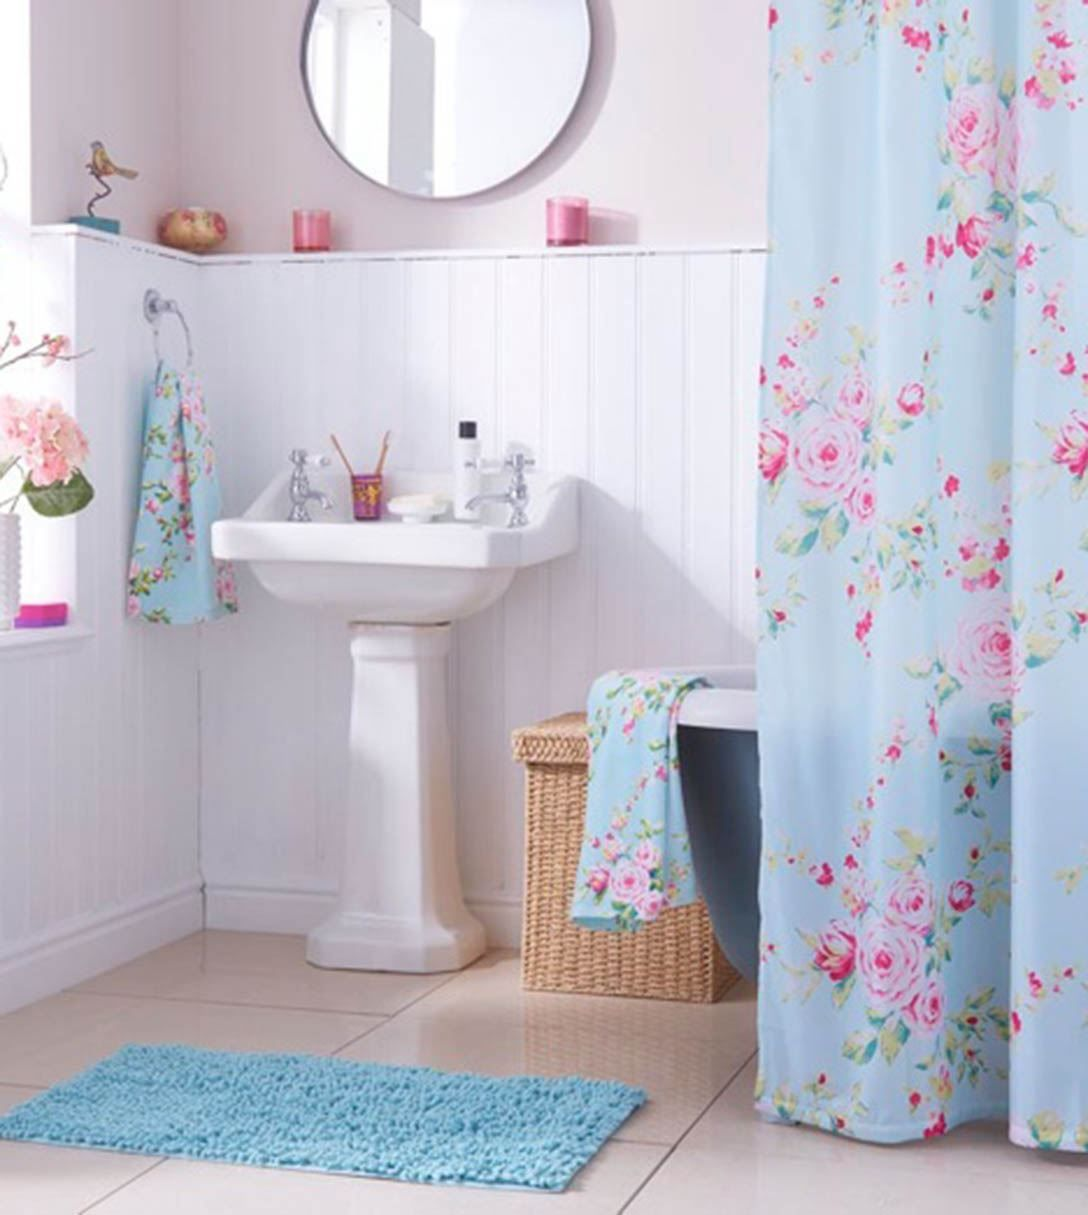 Looks Cute Floral Shower Curtainpink And Baby Blue Together - Pink and blue bathroom accessories